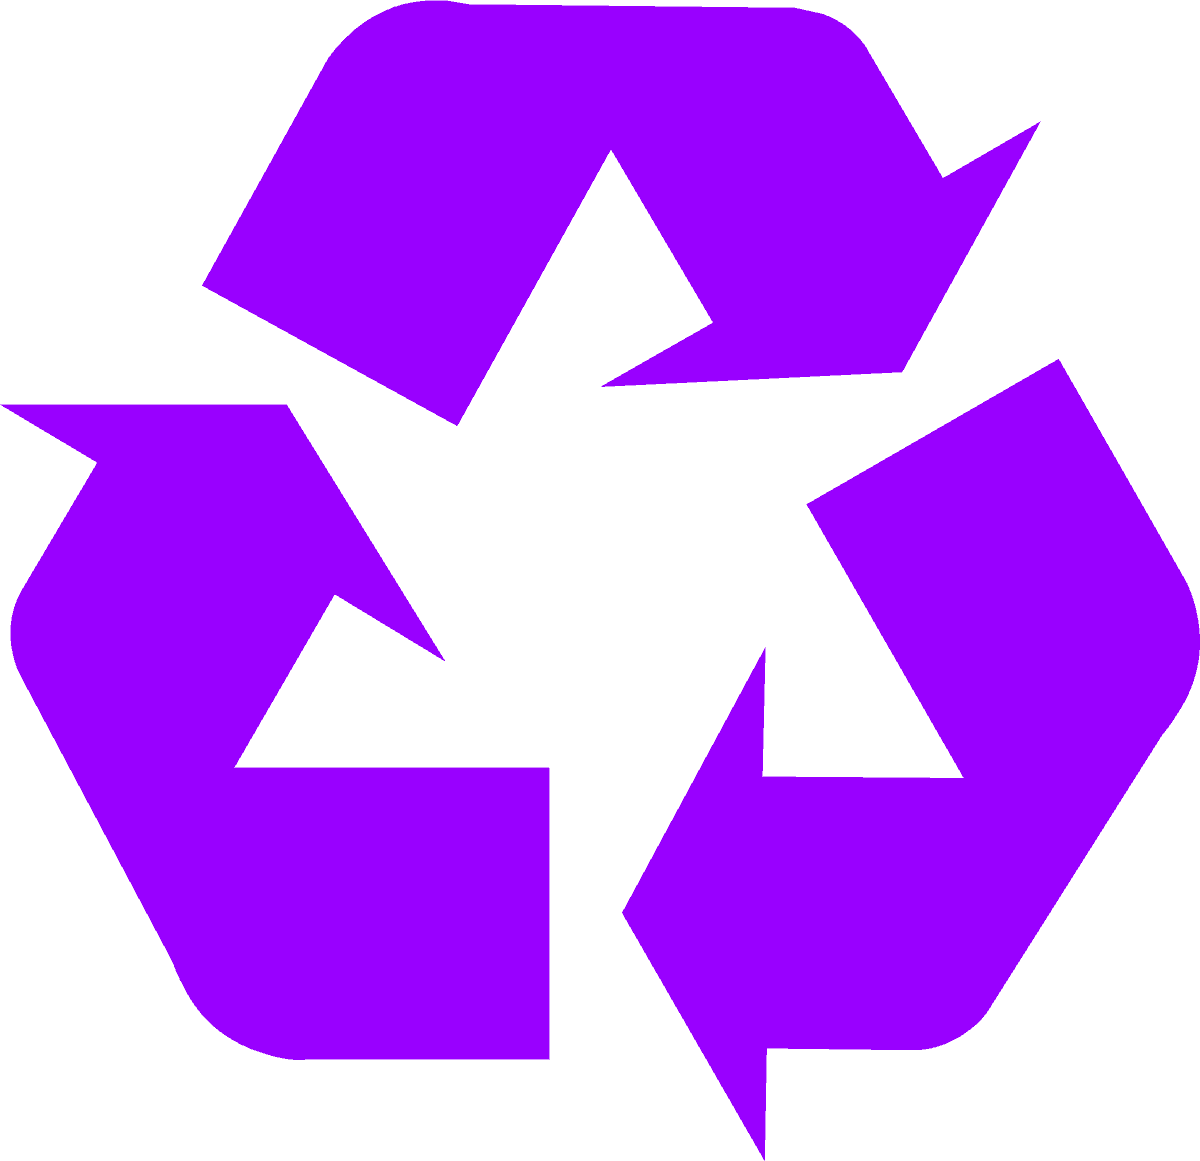 recycling-symbol-icon-solid-purple